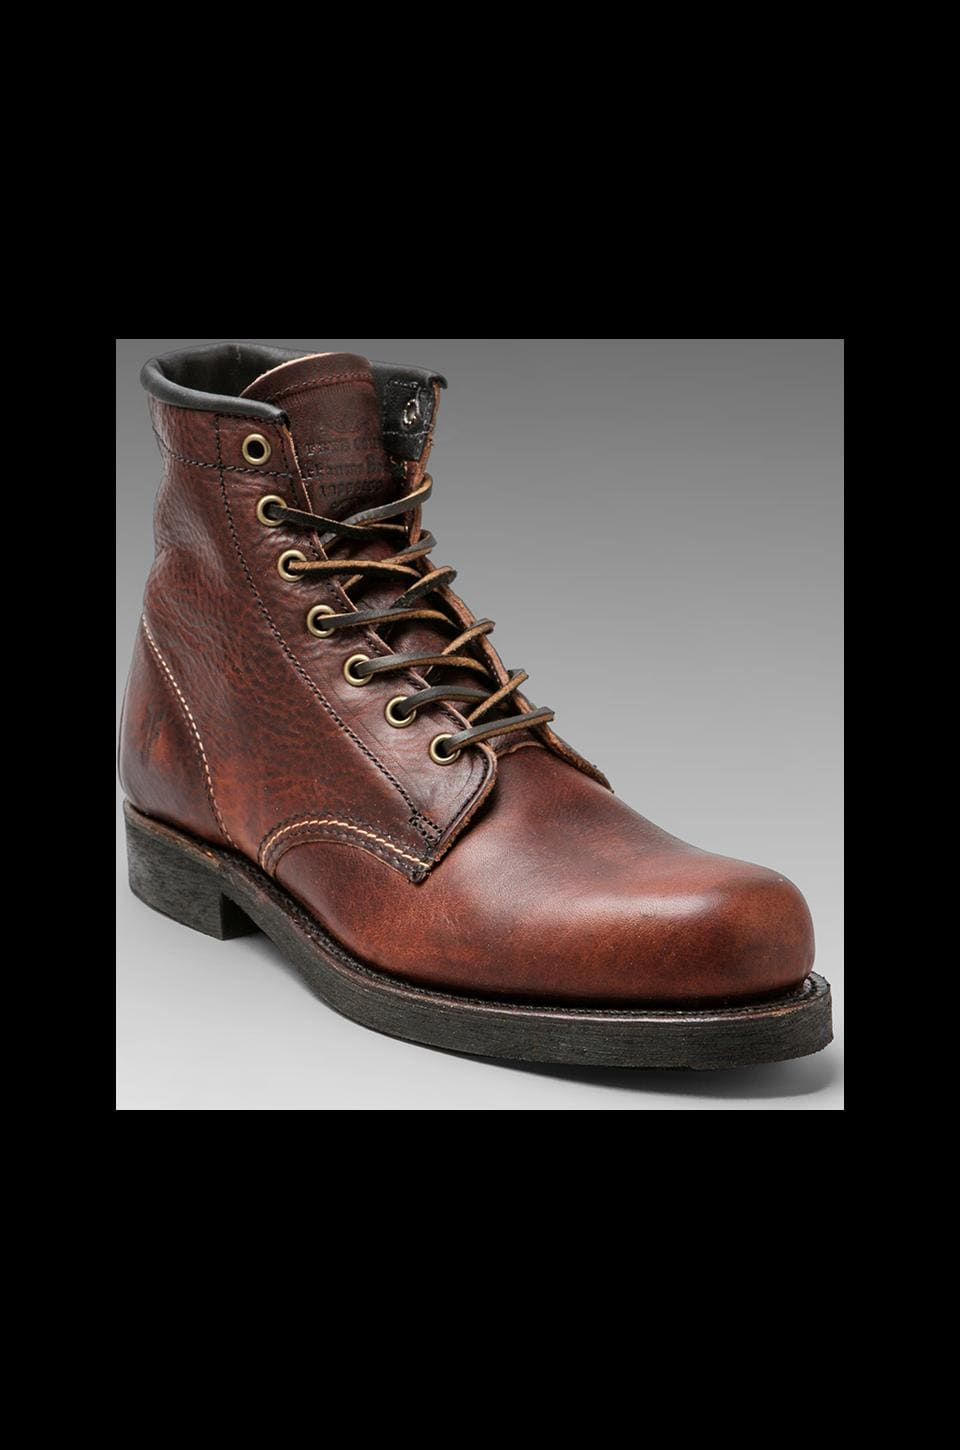 Frye Arkansas Mid Lace Boot in Chestnut